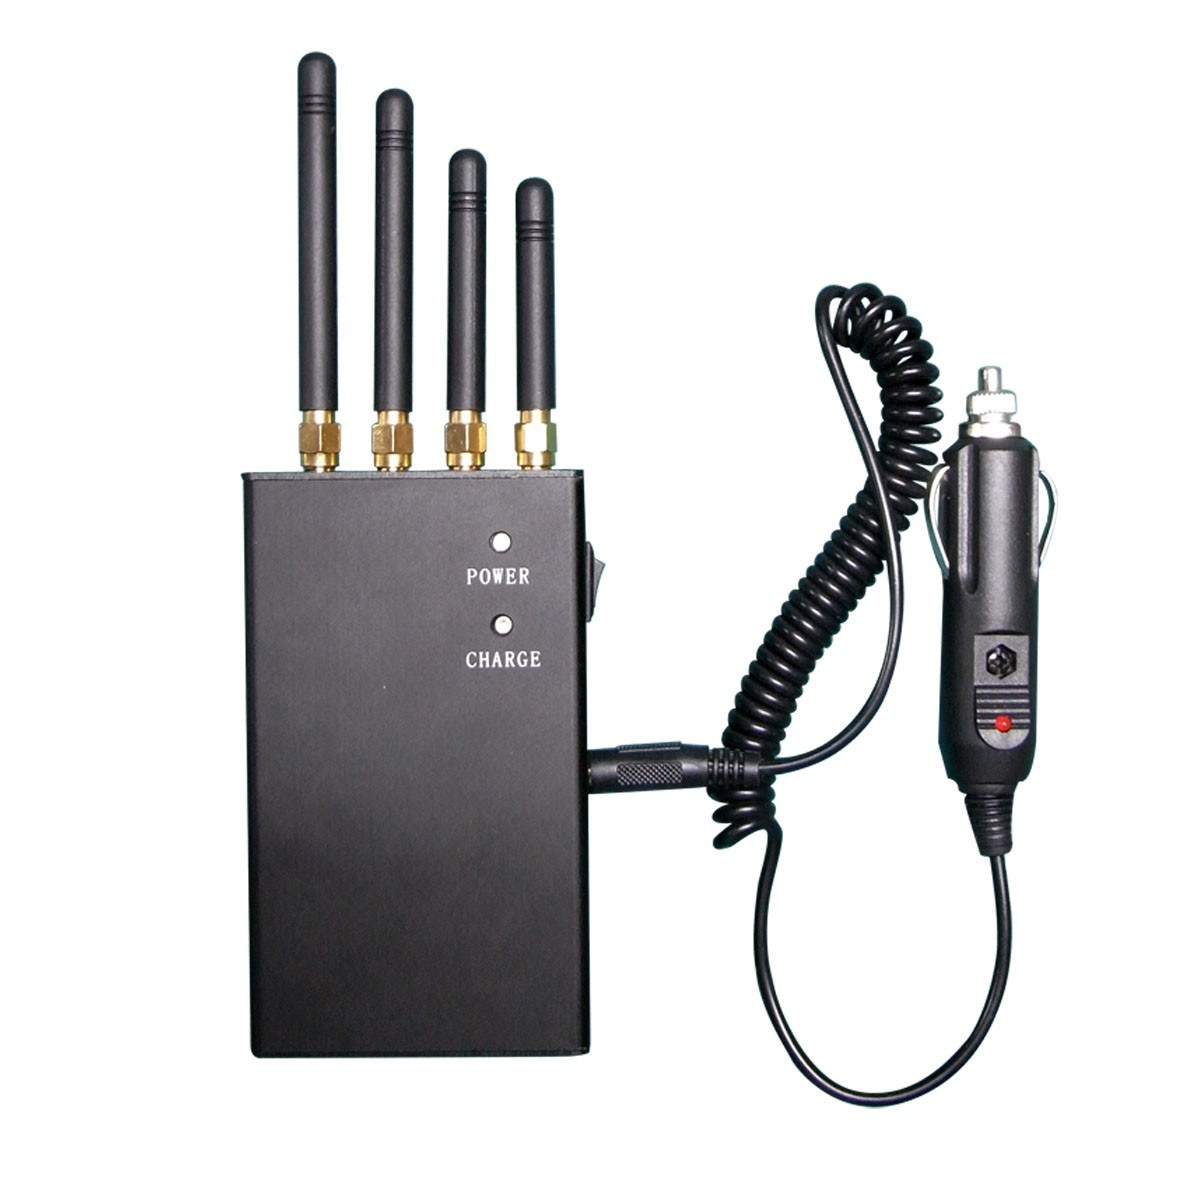 4 Band 2W Portable 4G Lte and 3G Cell Phone Jammer